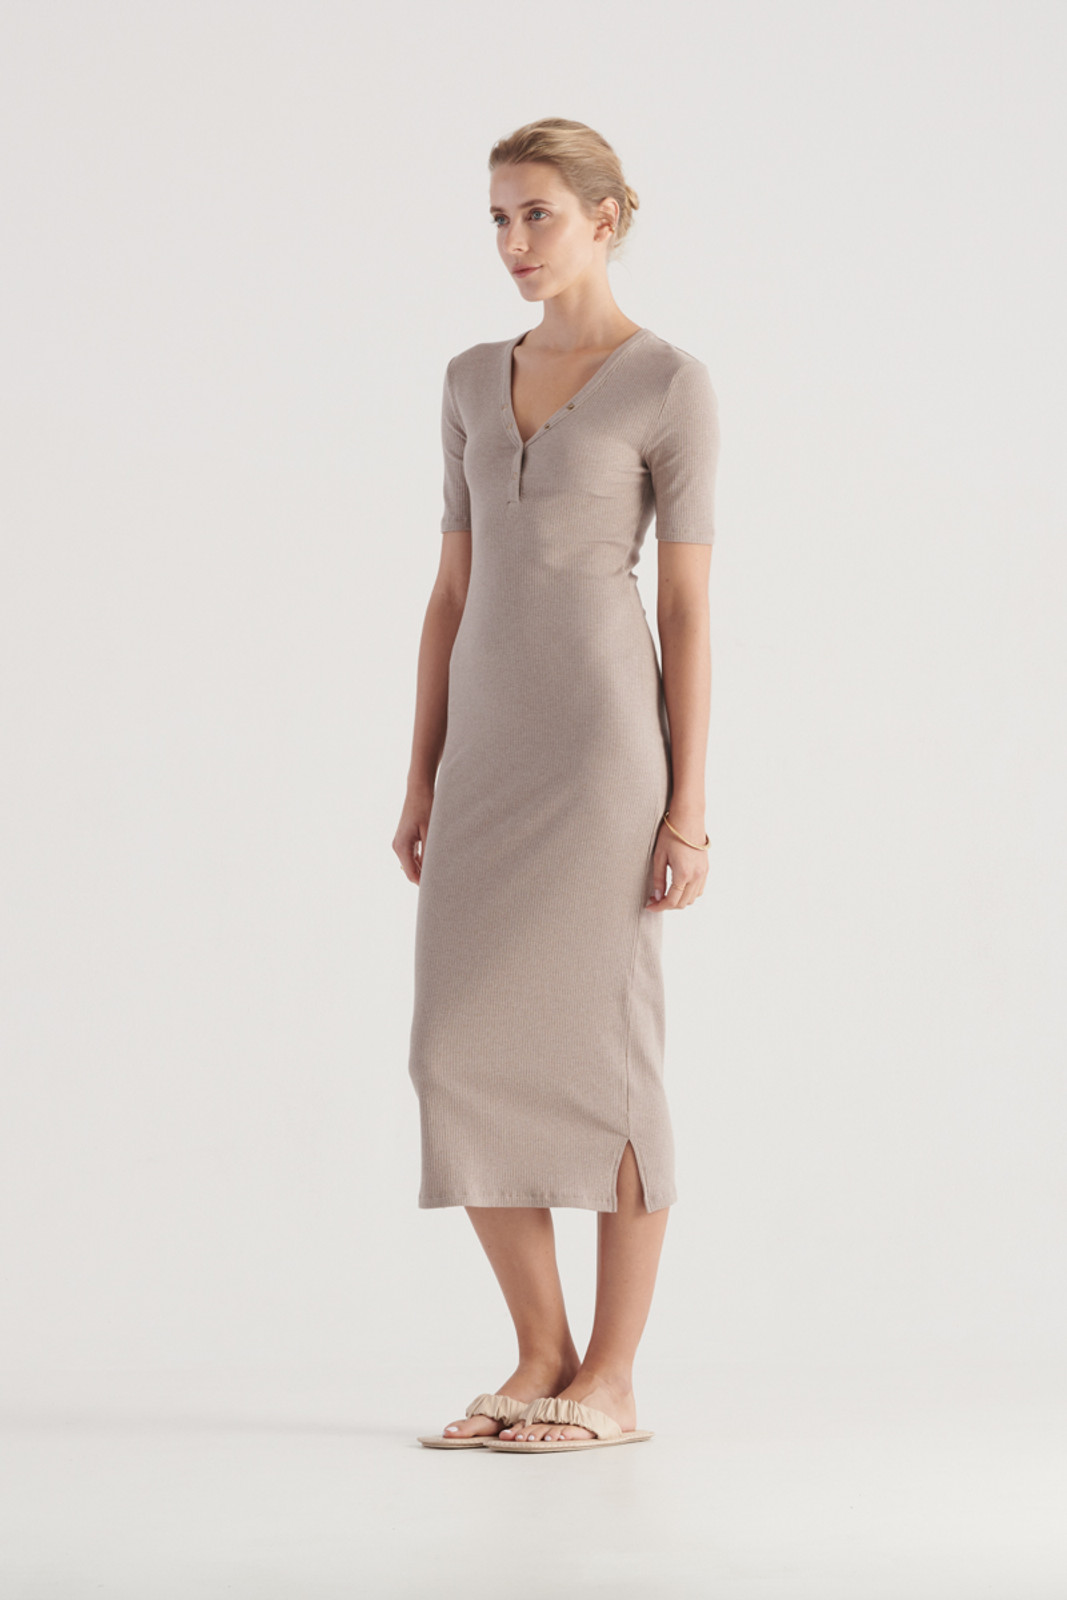 Elka Collective WomensHadley Dress Taupe Marle  1